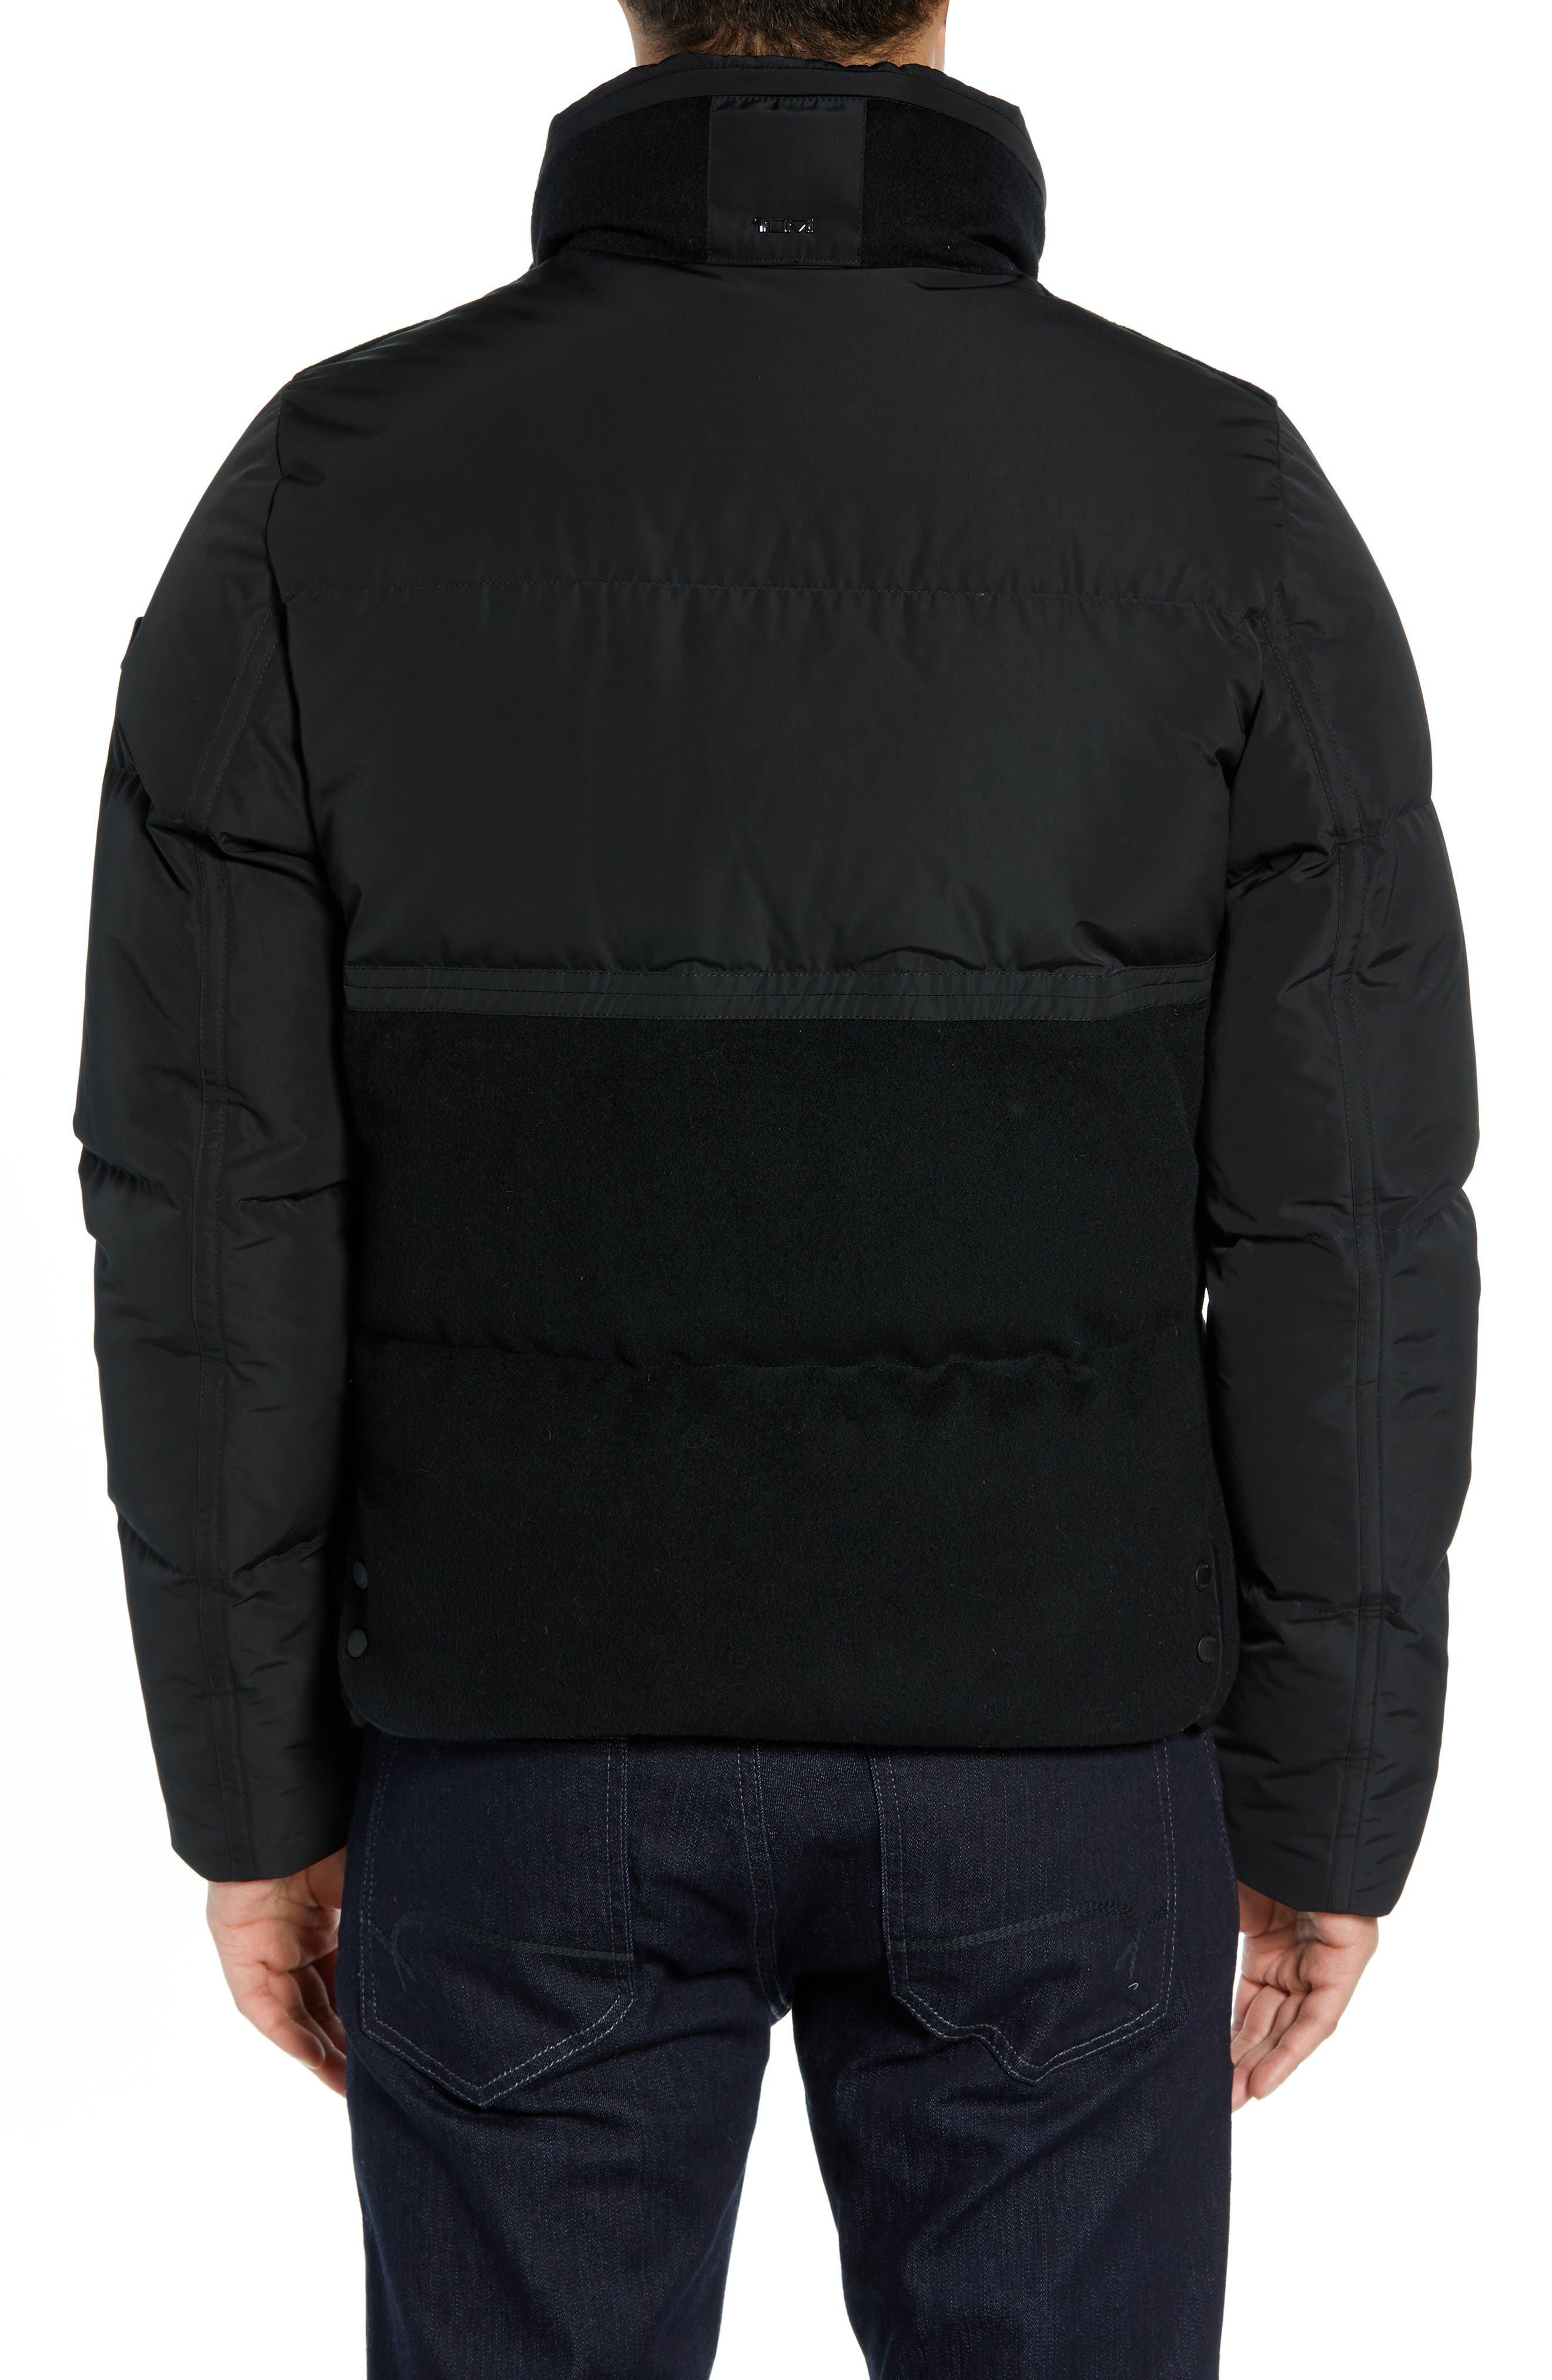 Wool Puffer Jacket,                             Alternate thumbnail 2, color,                             BLACK